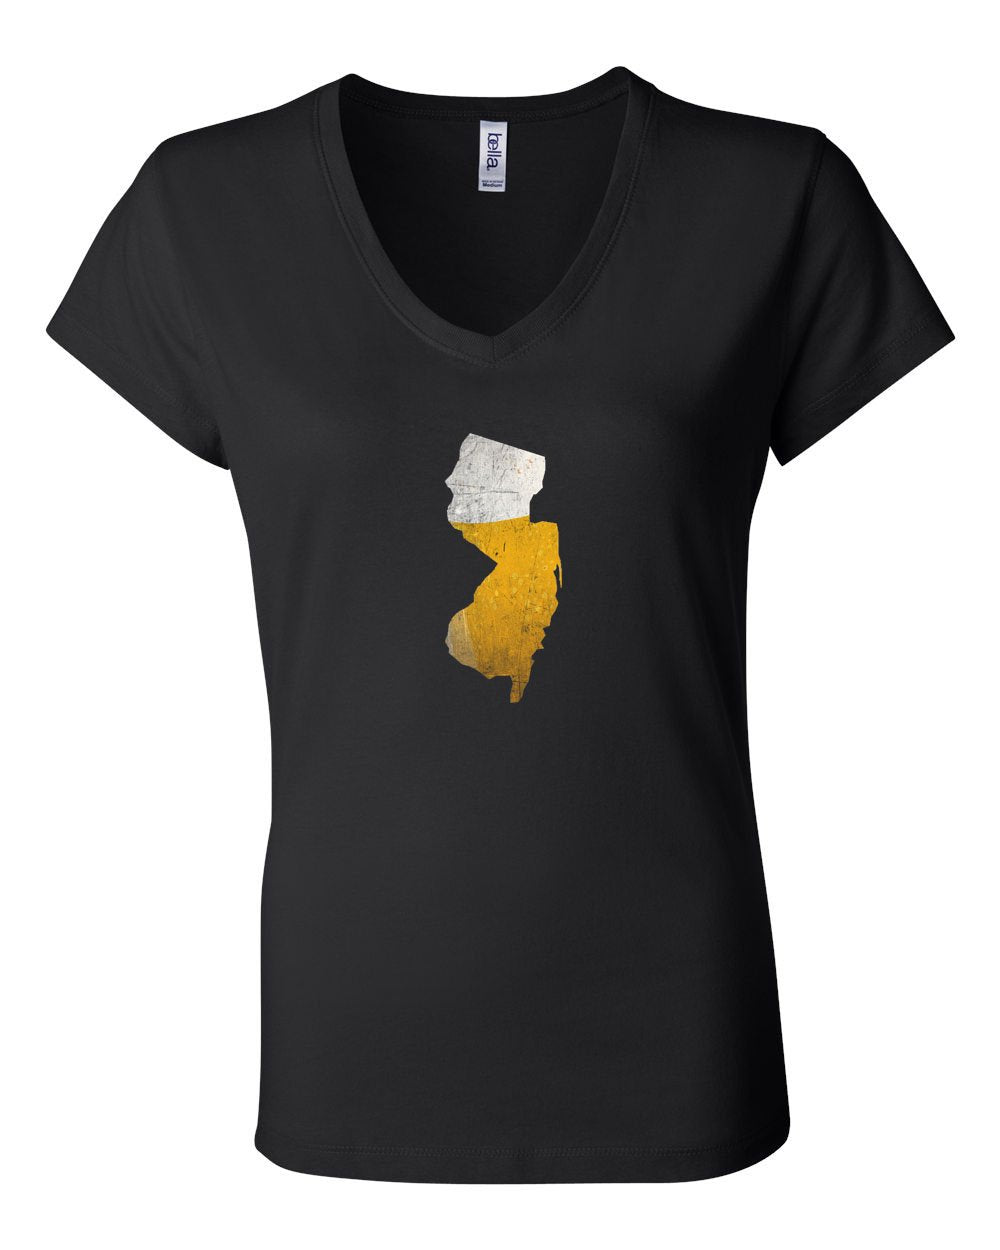 NJ Beer LADIES Junior Fit V-Neck